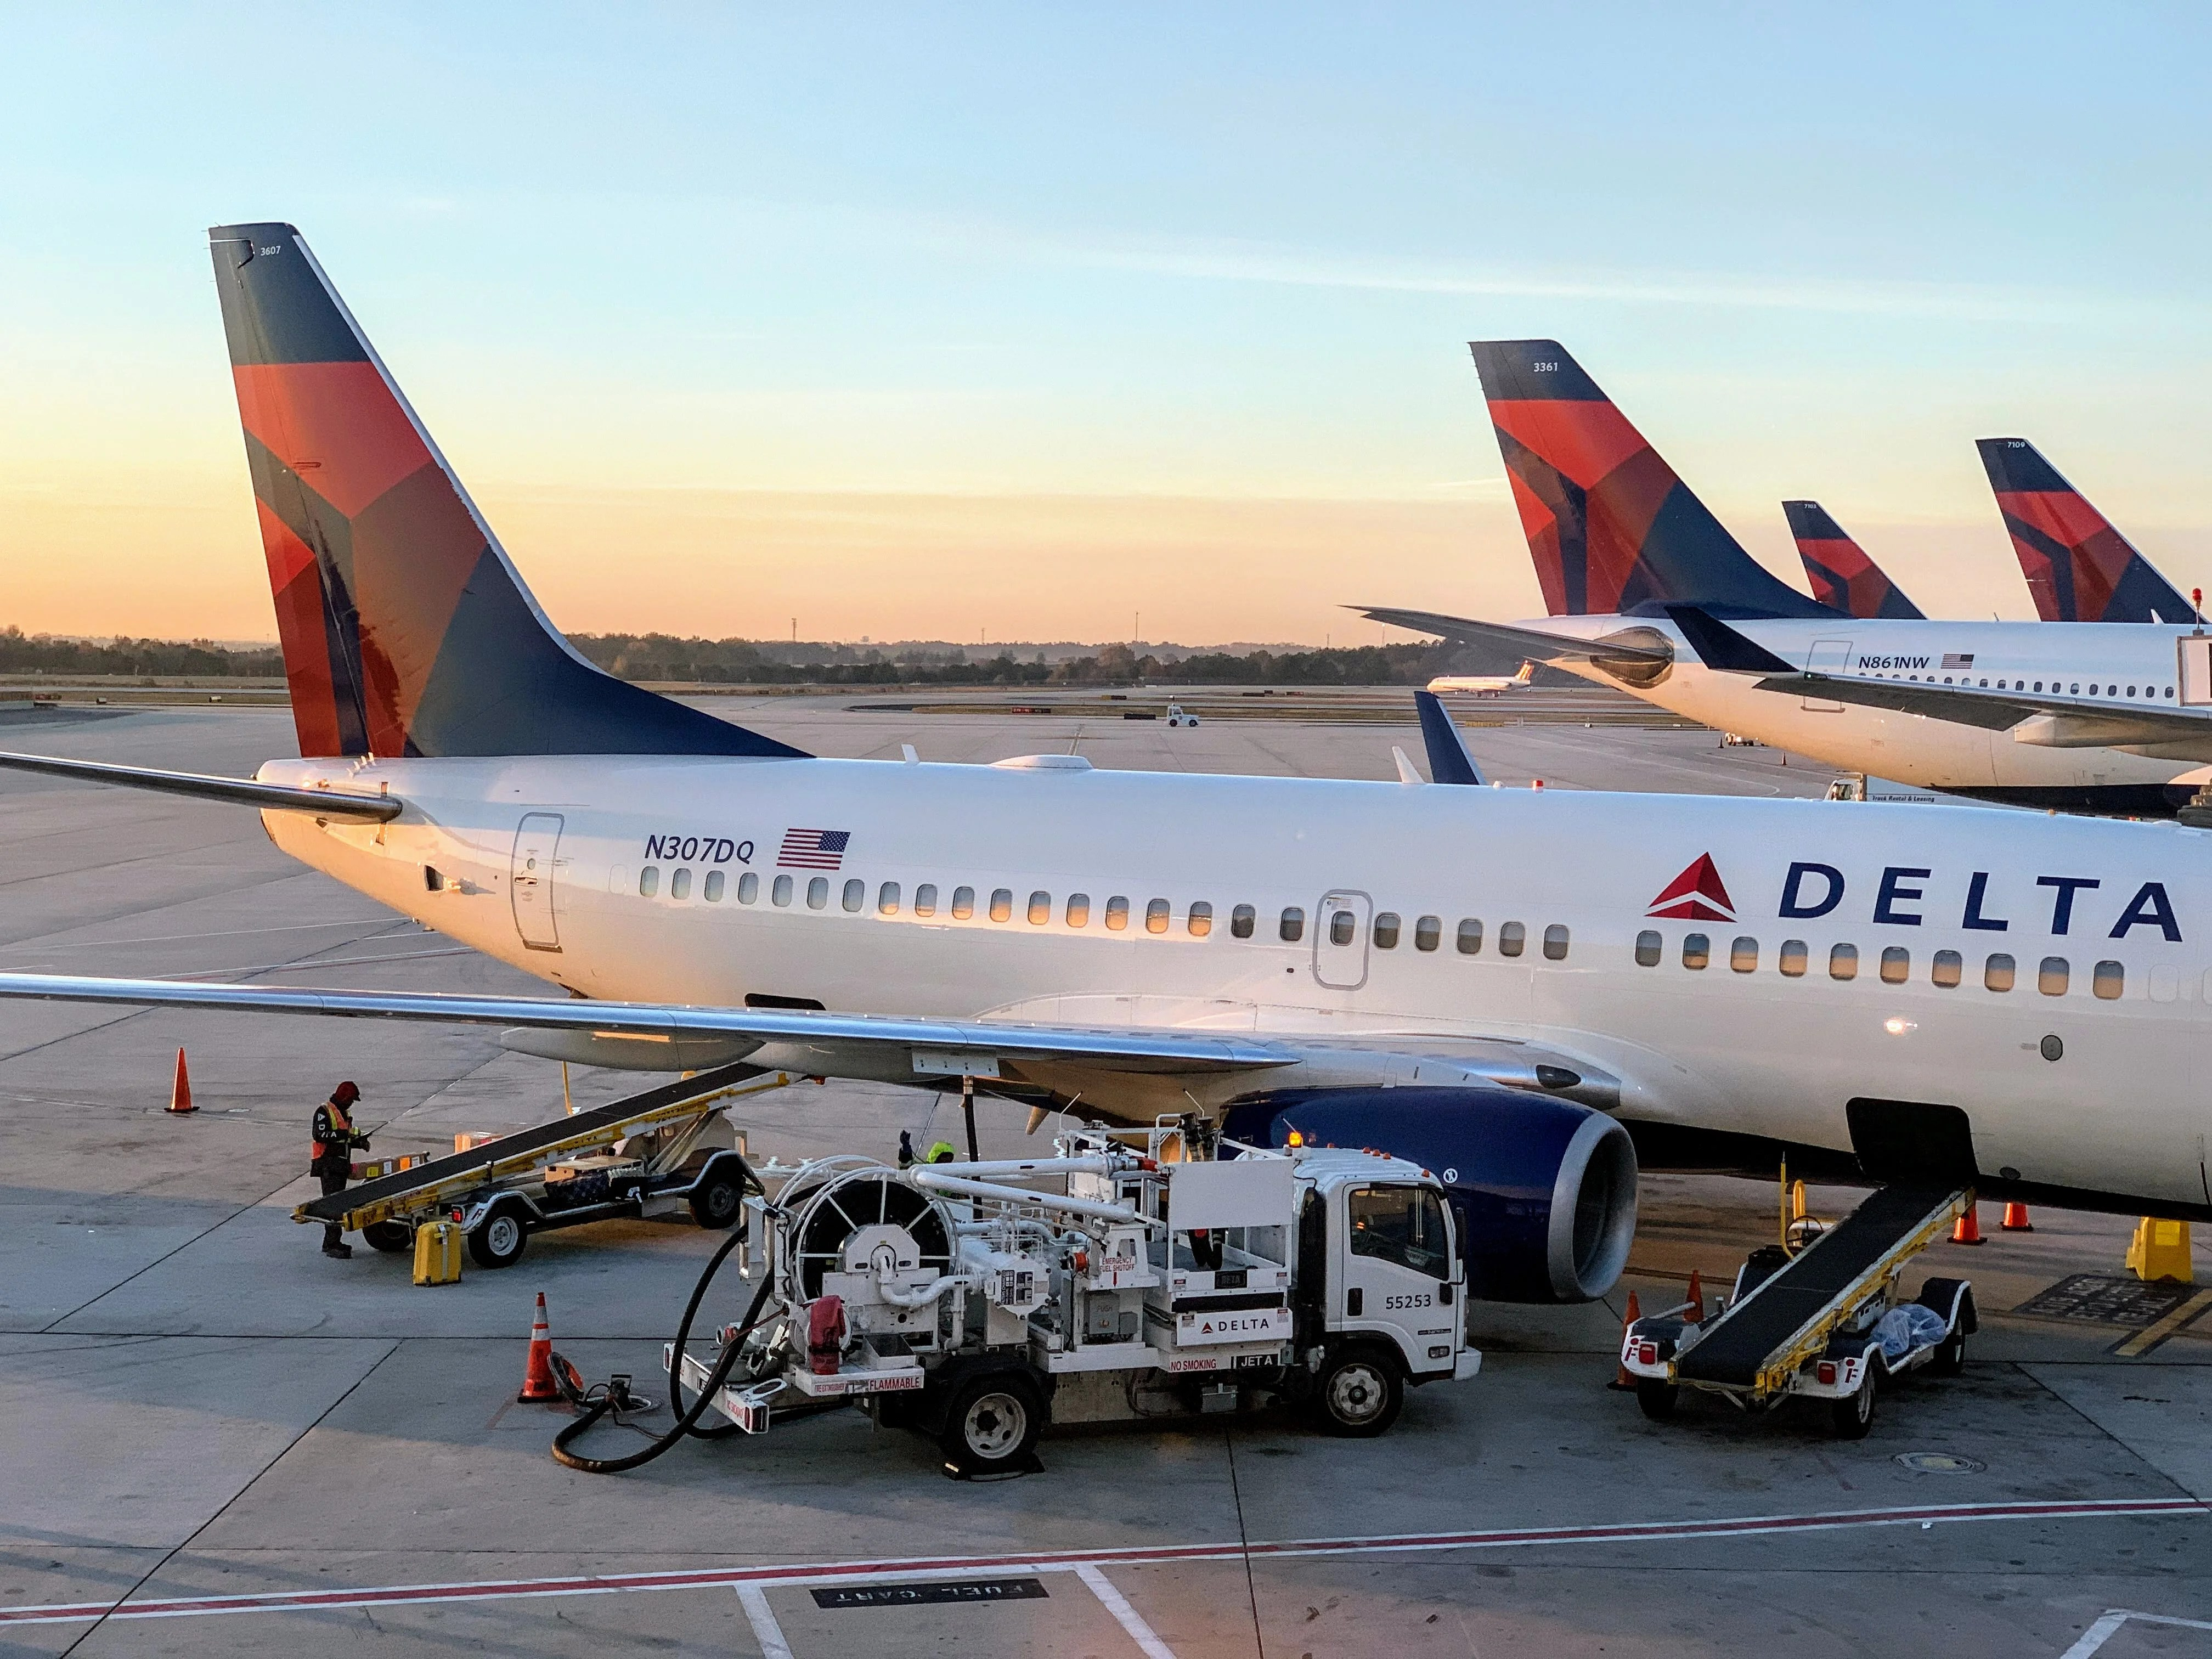 Delta Offering Enhanced Status Match Challenge to Alaska Air Frequent Flyers